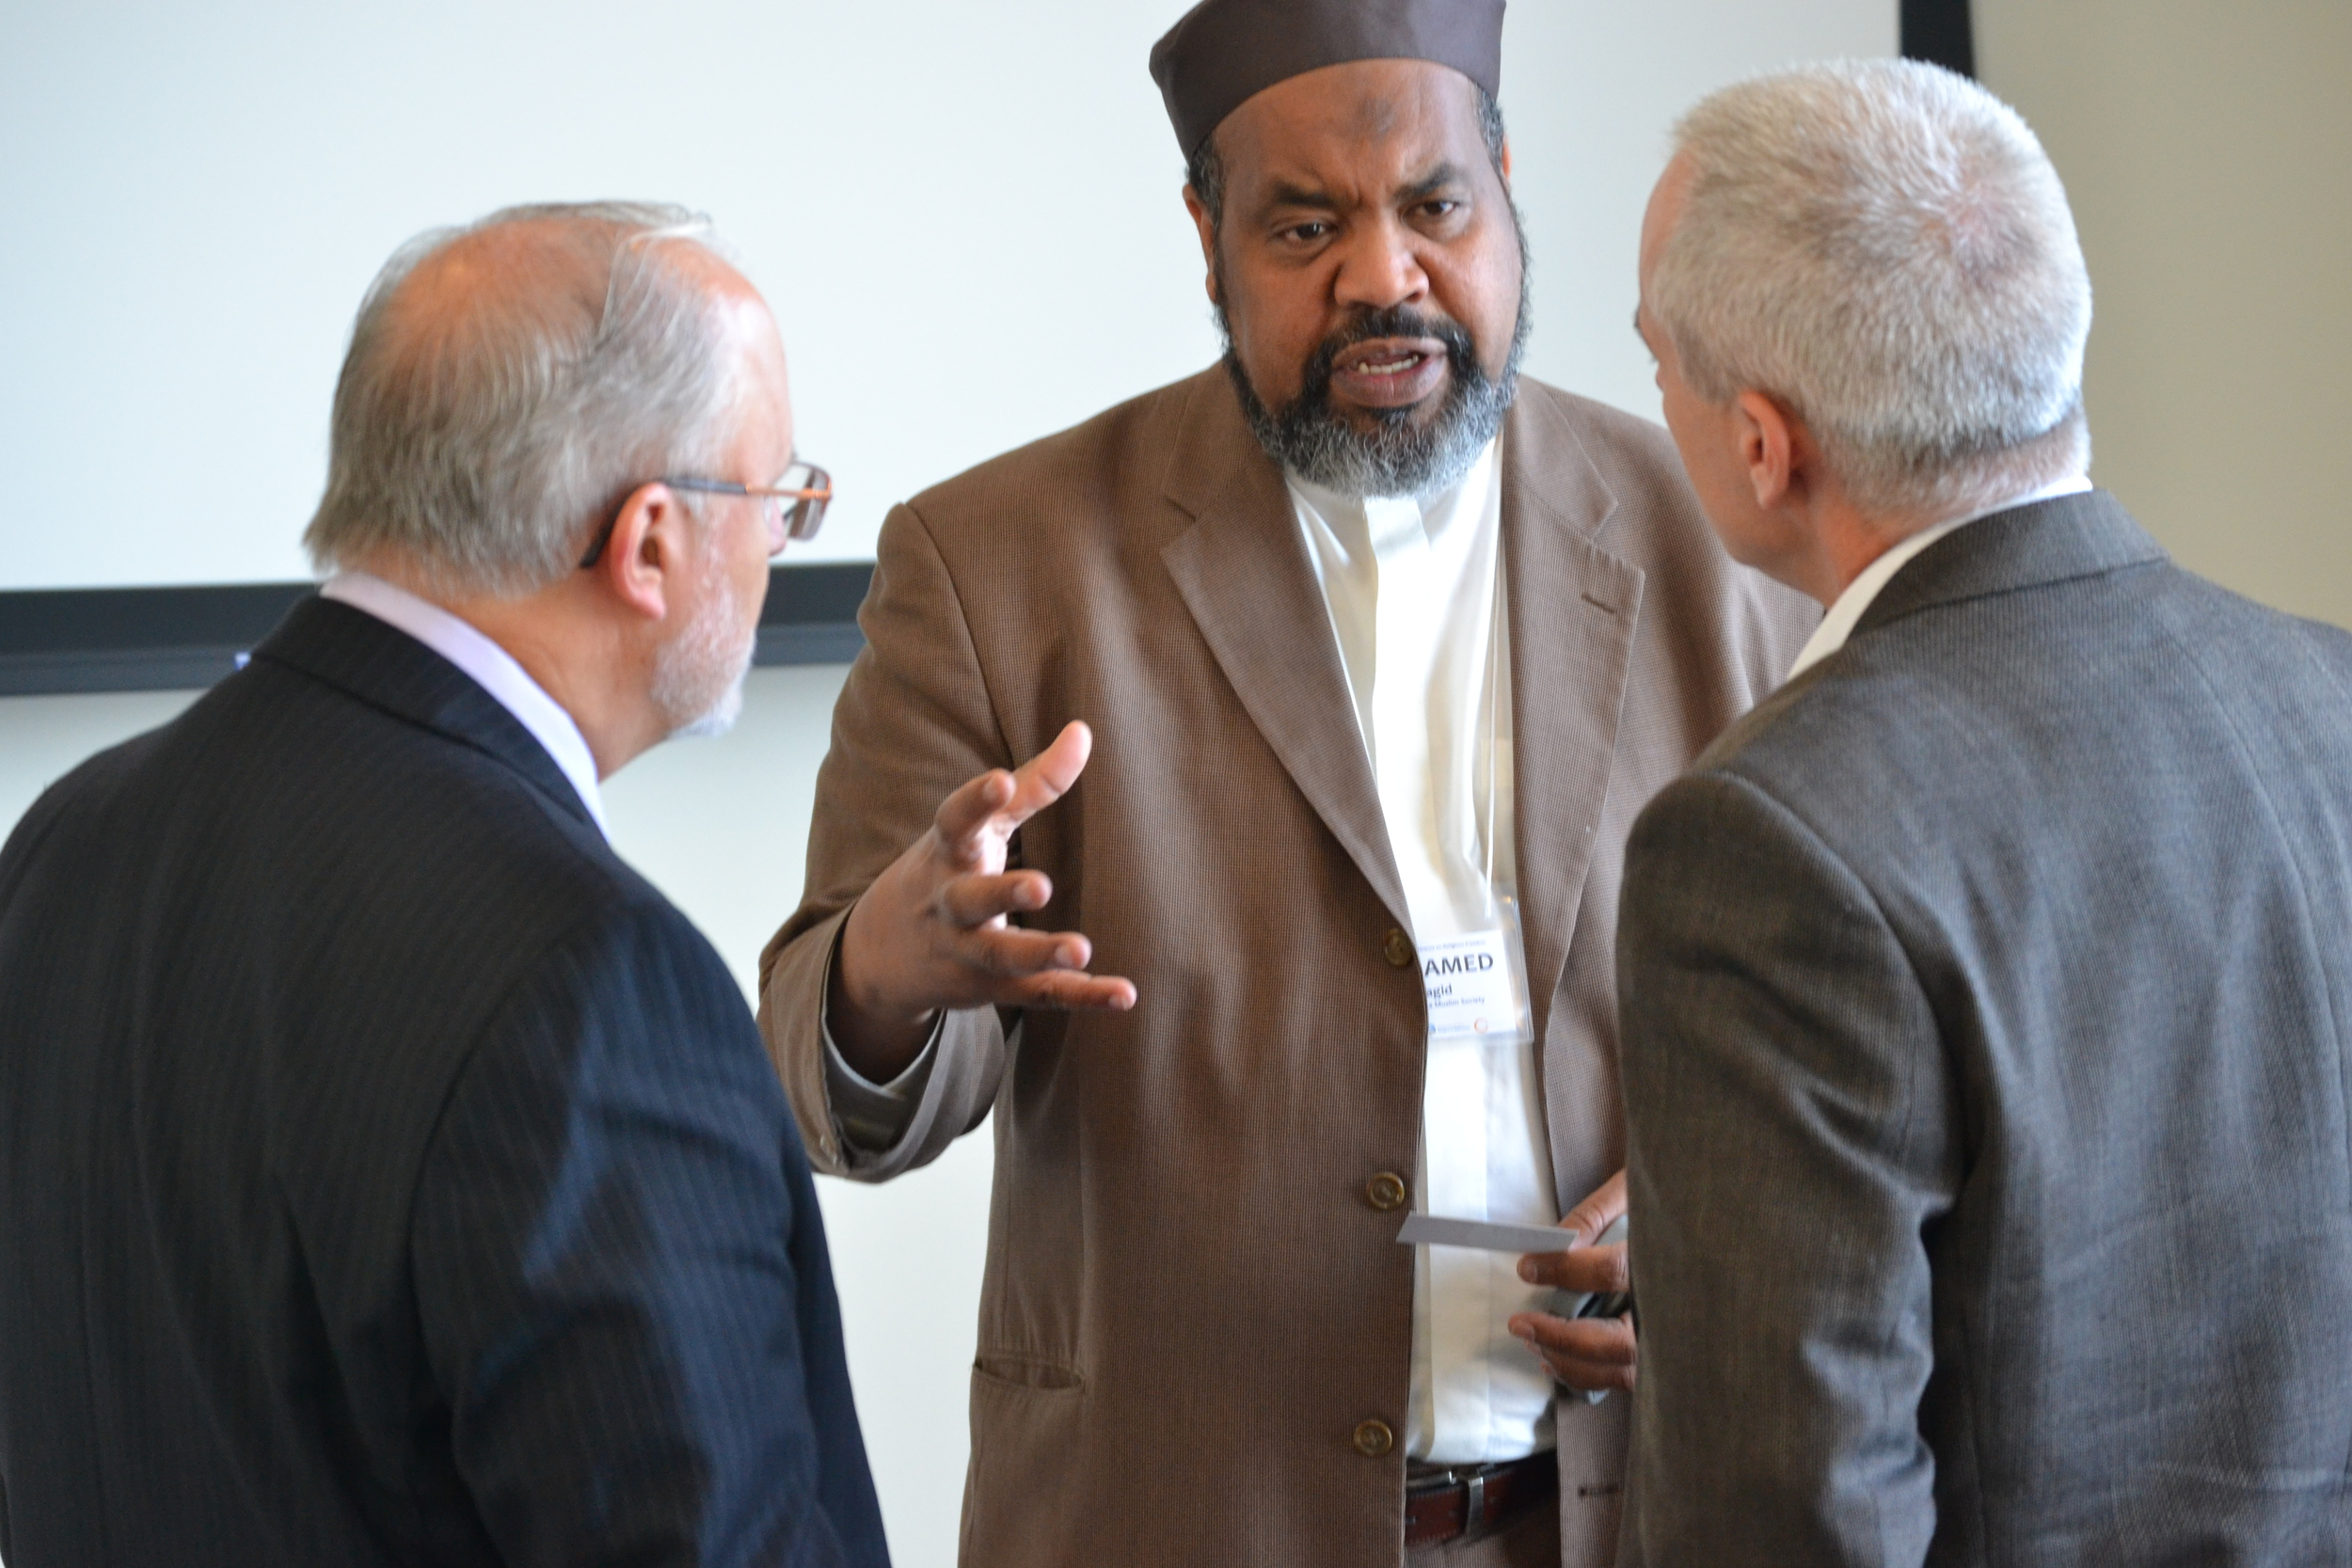 Click the image above to see pictures from the Conference on Religious Freedom and Islamophobia.